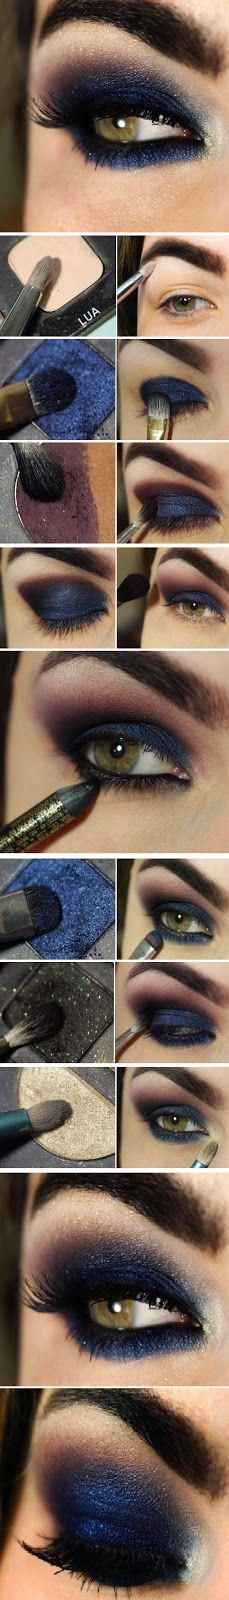 Fantastic Makeup Tips for Formal Cocktails #party #formal #women #covetme